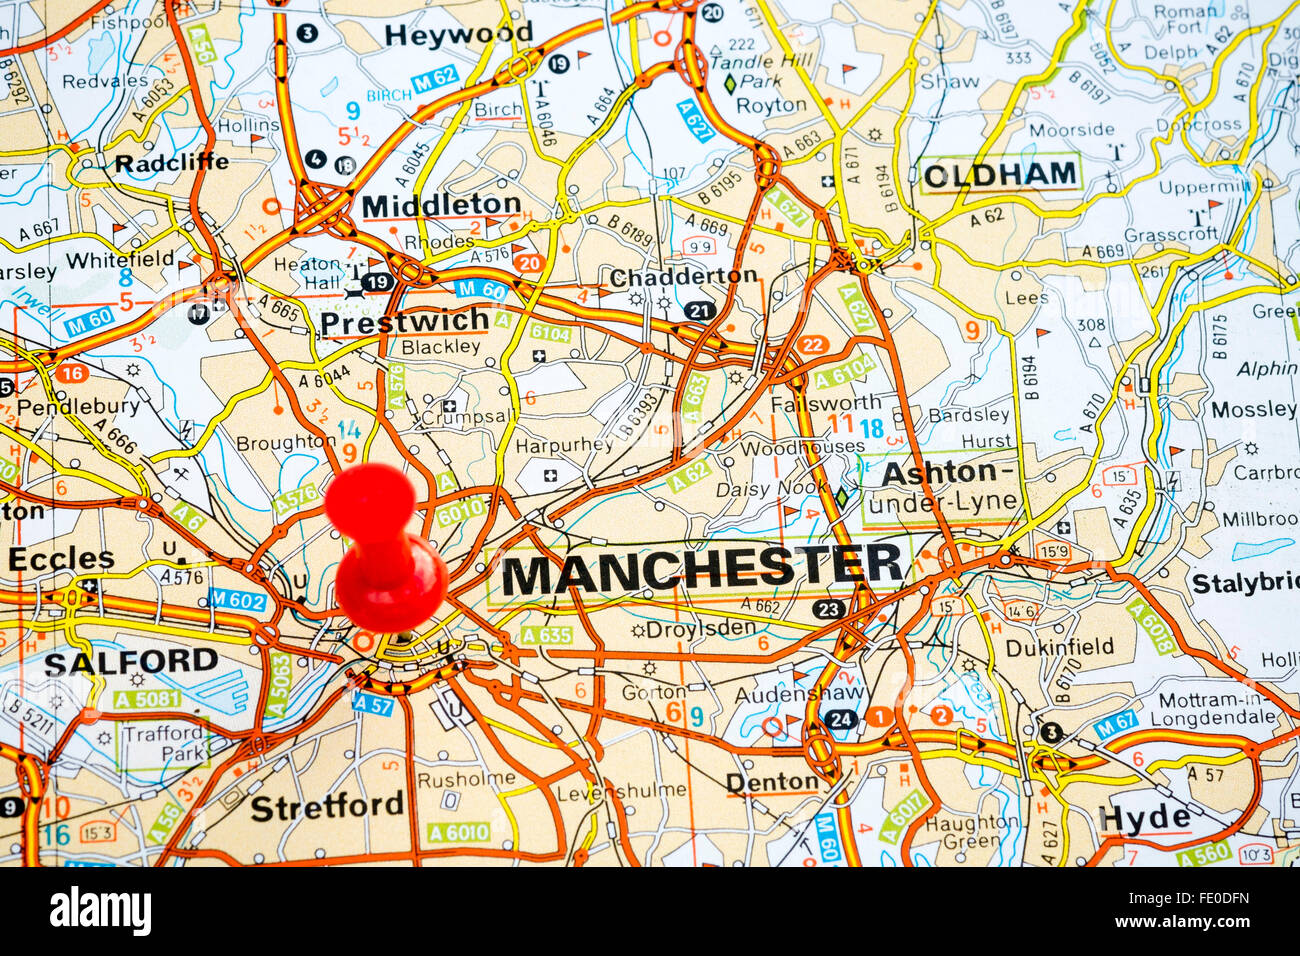 Map pin marking Manchester City, United Kingdom. - Stock Image